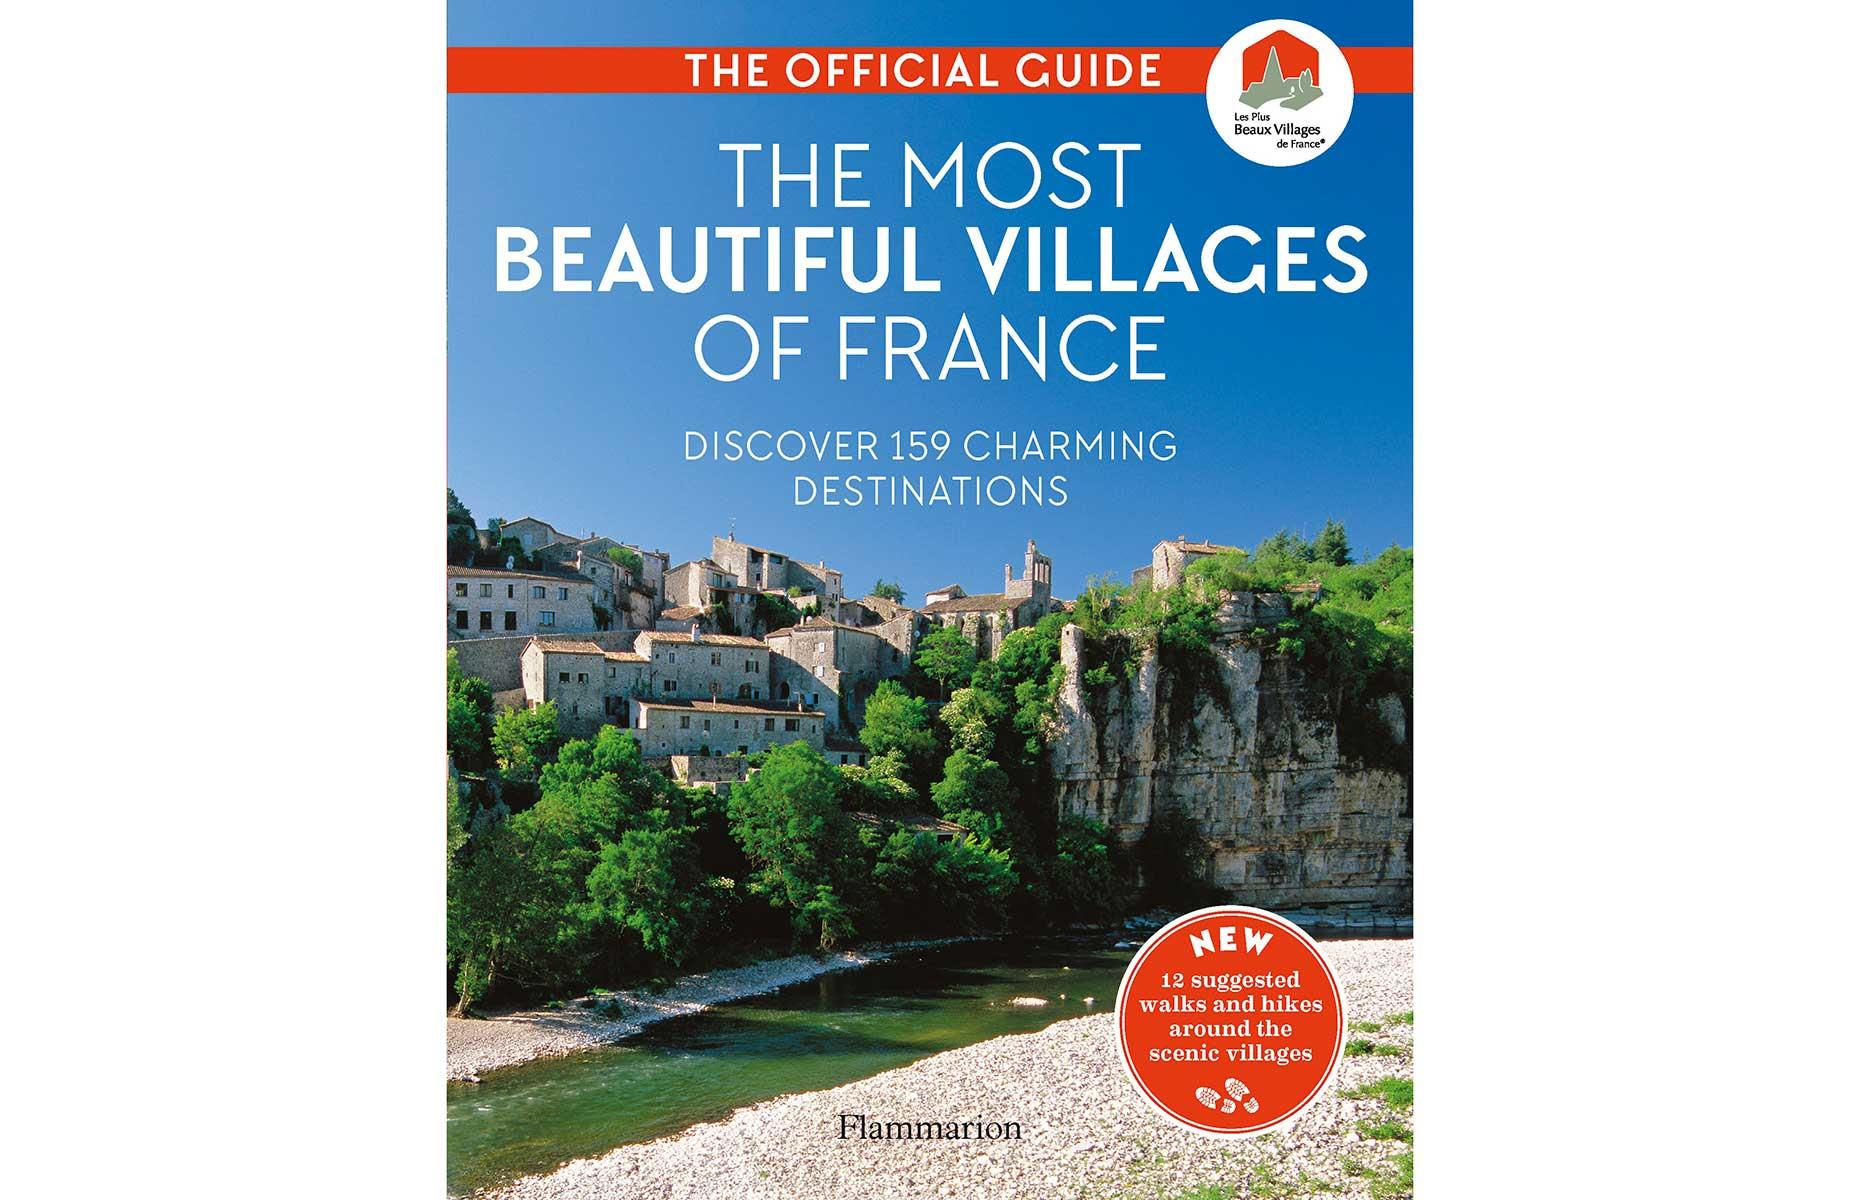 Slide 37 of 37: All words have been taken with permission from The Most Beautiful Villages of France(Flammarion, 2020). The book features 159 of the most picturesque villages in the country, along with a dozen itineraries for walks alongthe surrounding pilgrimage trails.